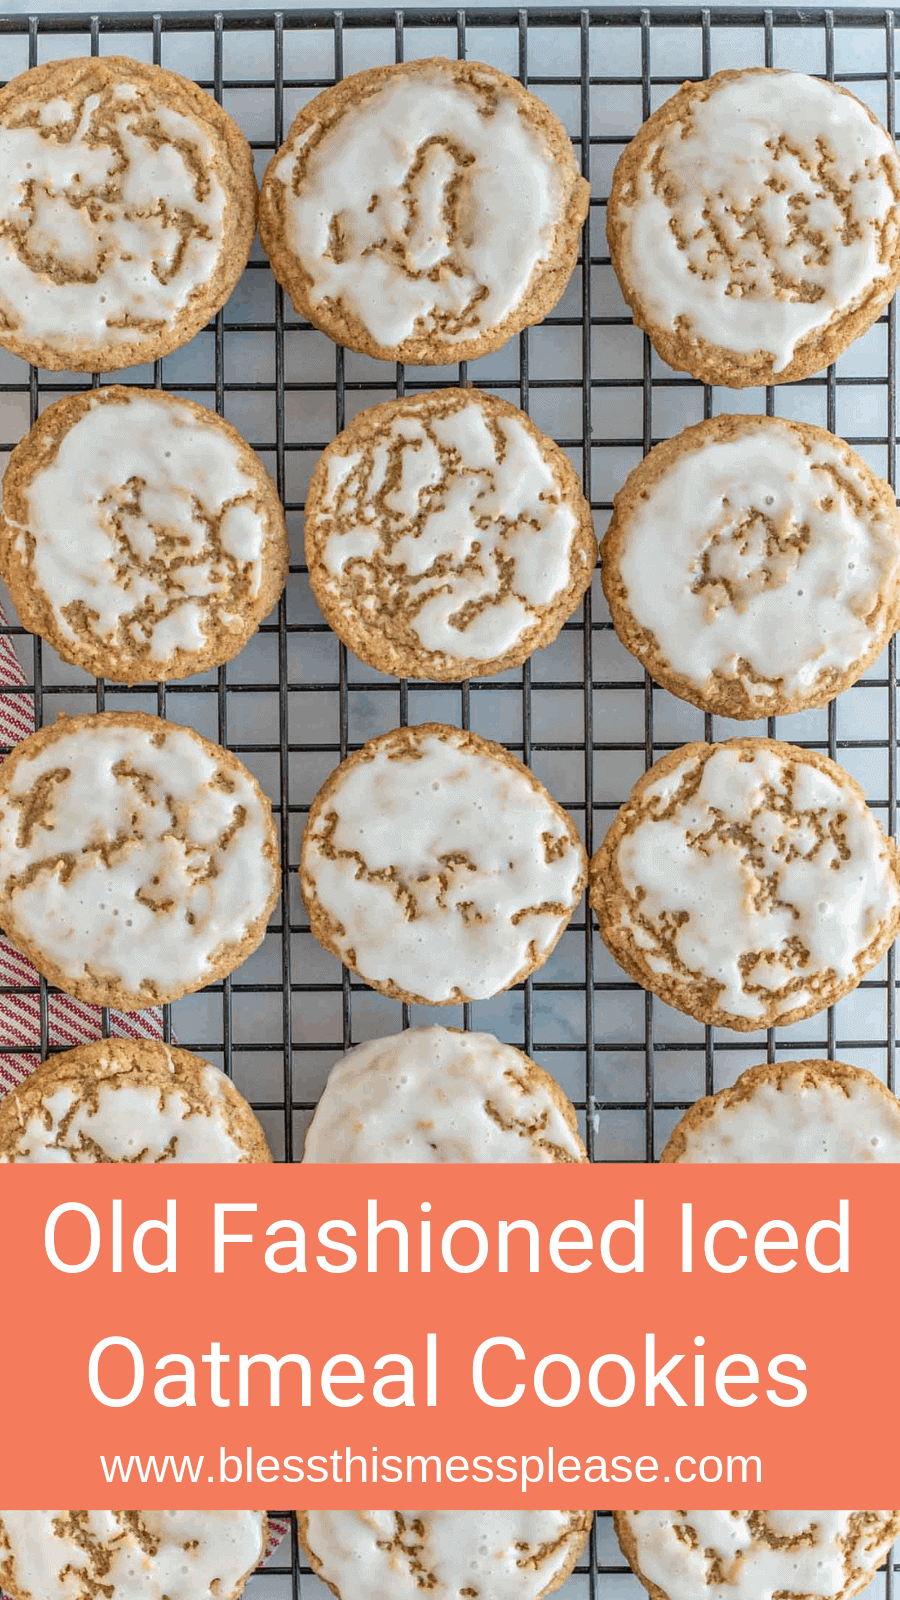 These old fashioned iced oatmeal cookies are the most charming little sweets and have a lovely balance of warm spices and sweet icing!